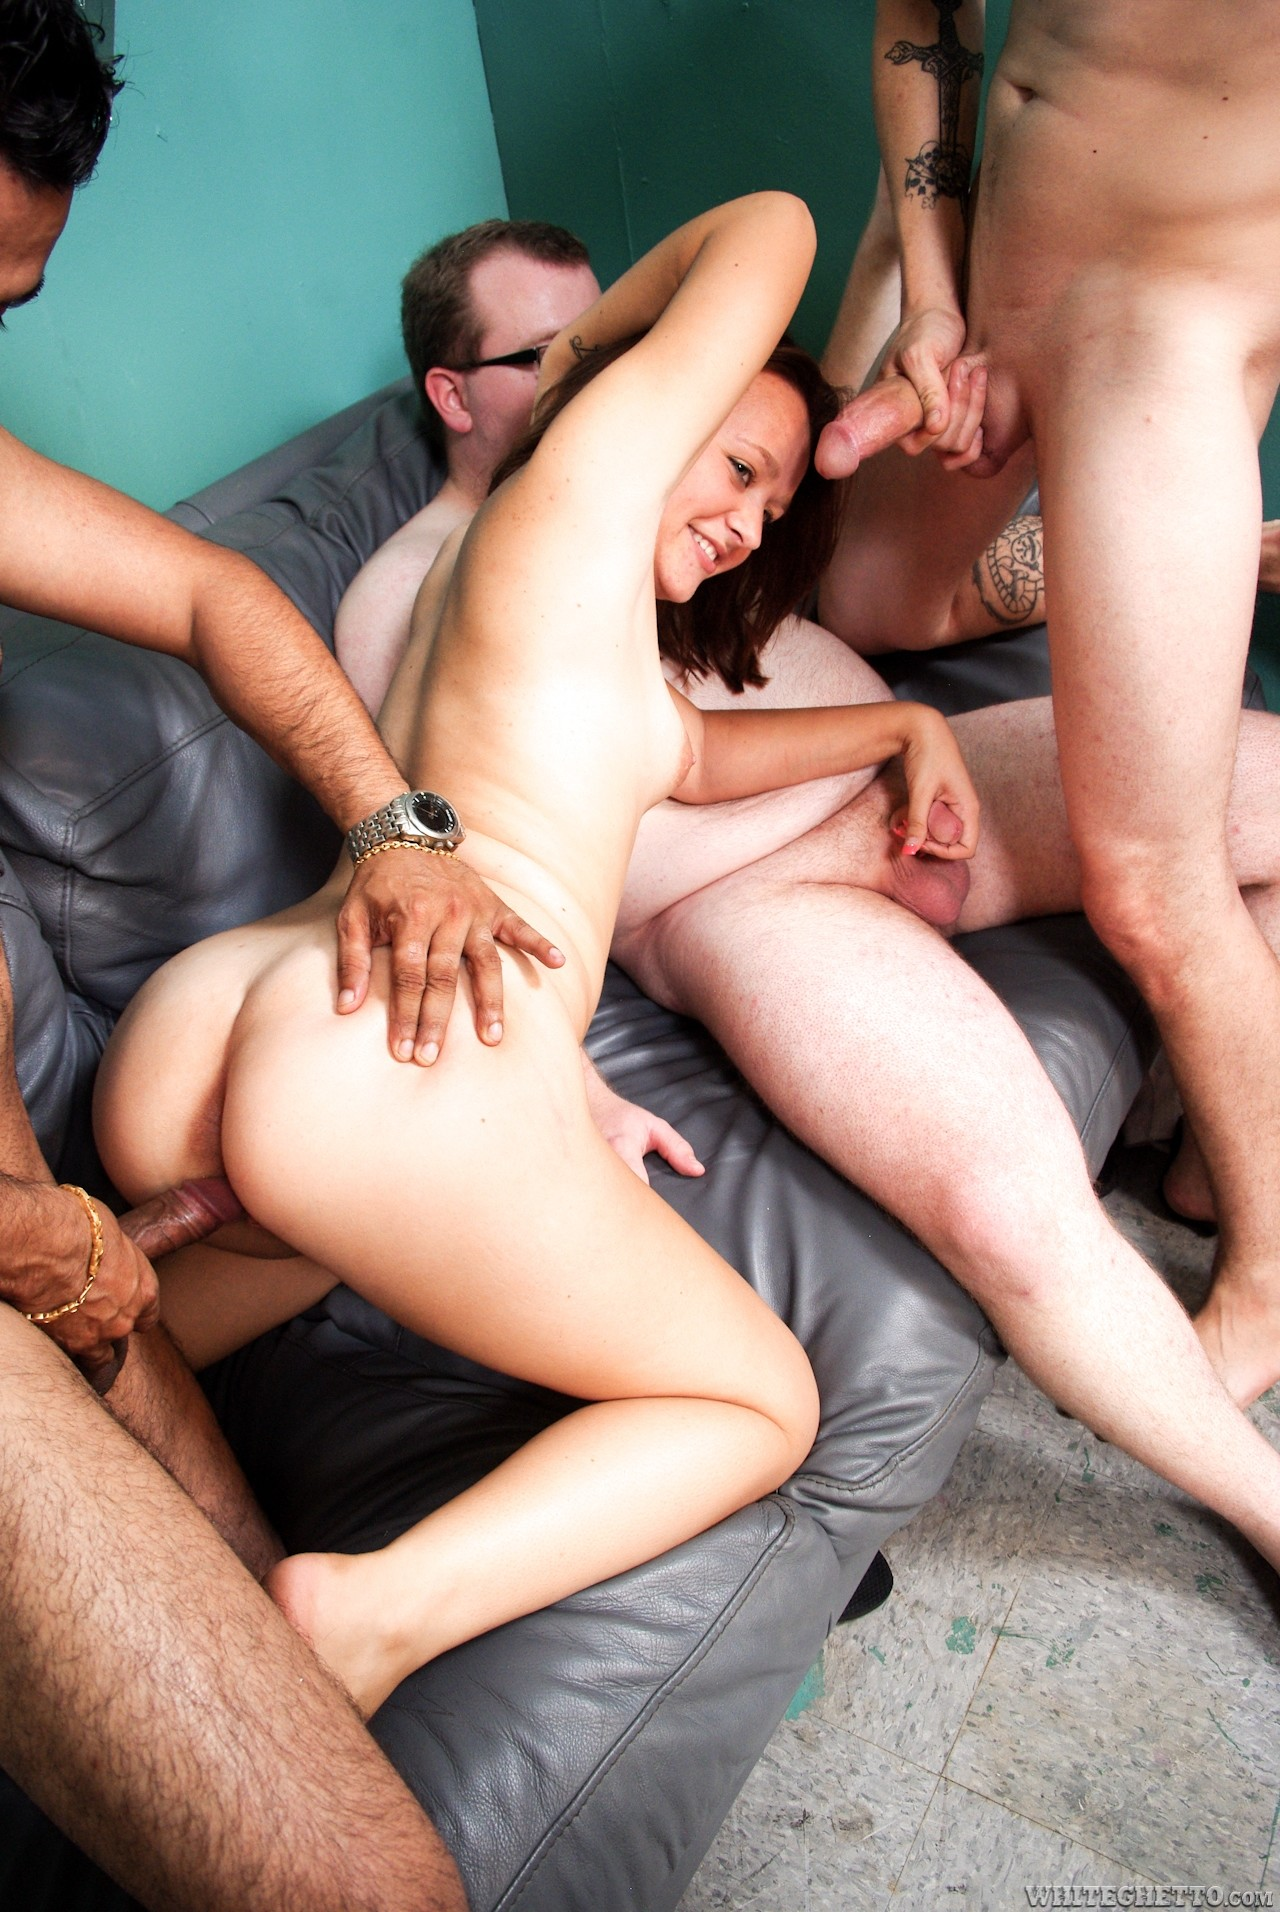 Pics Of Gang Bang